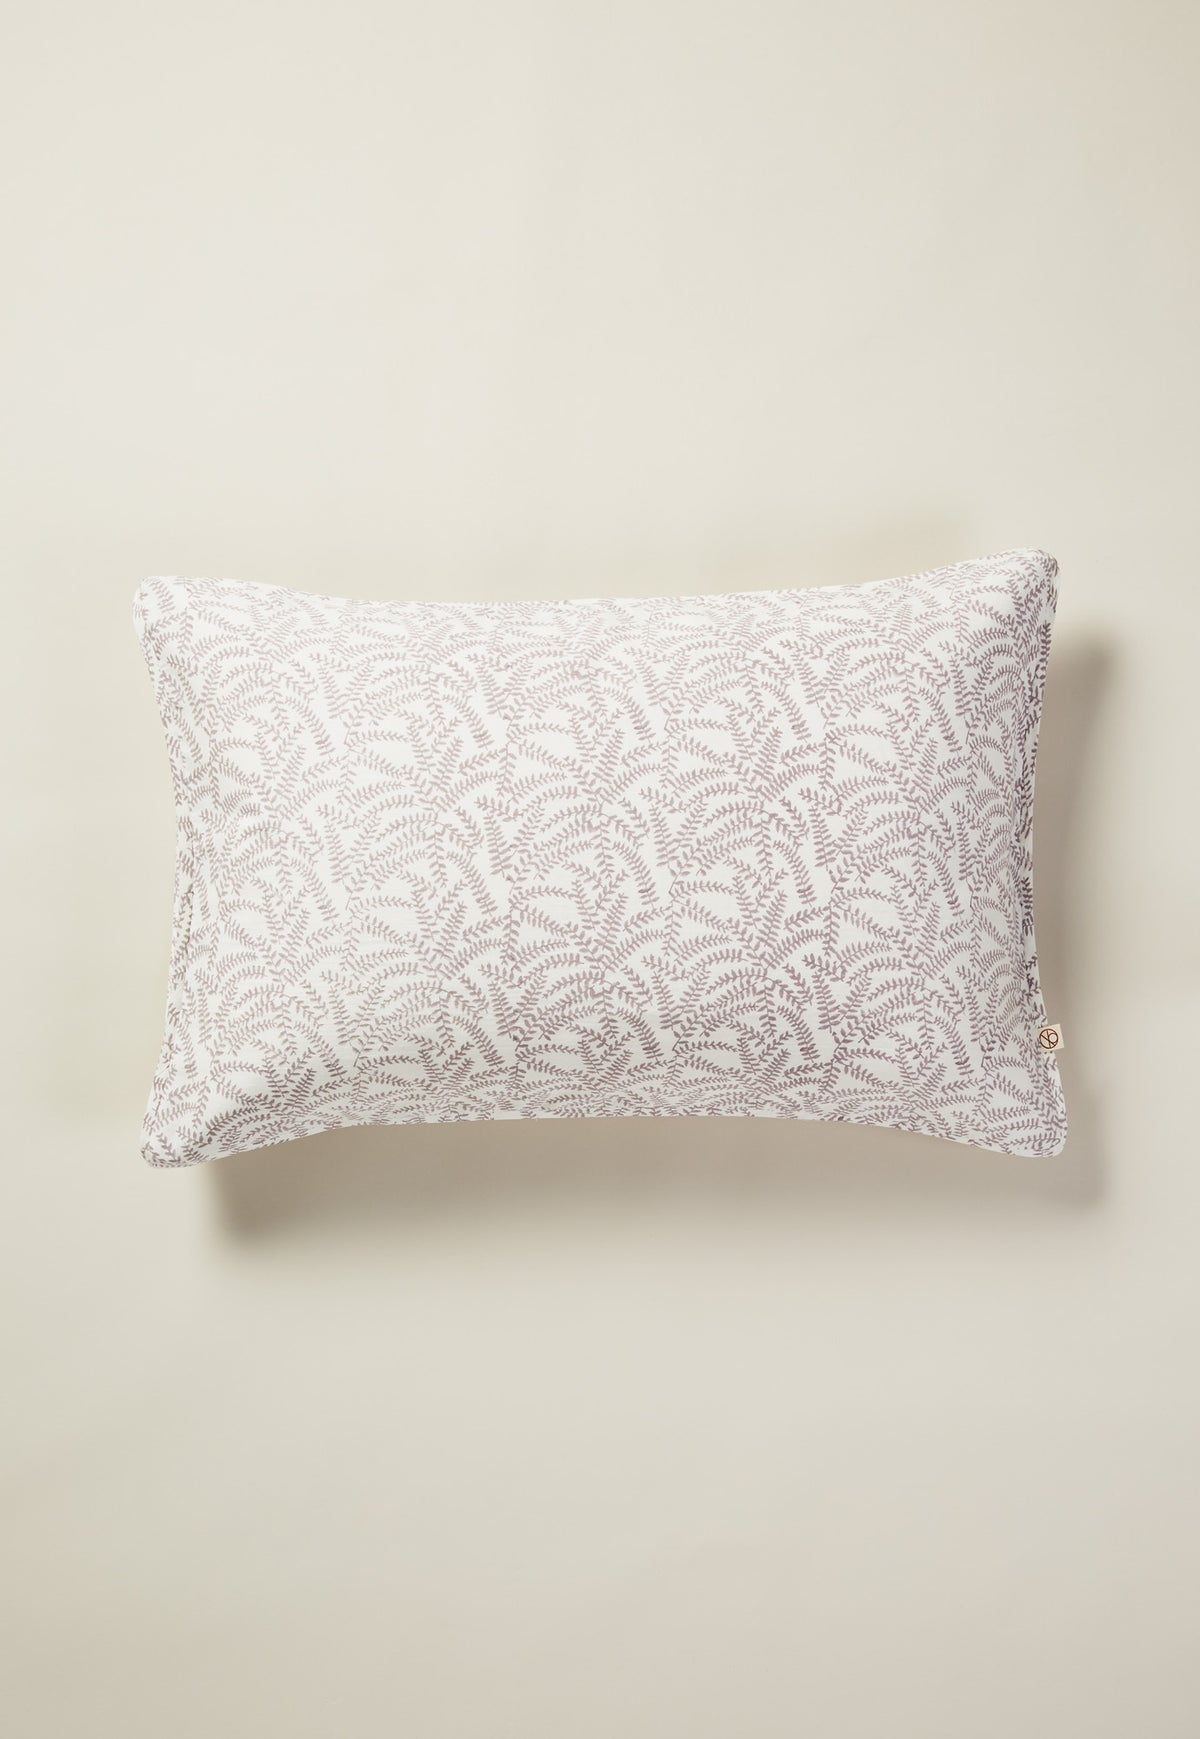 Pillowcase - Lilac Fern